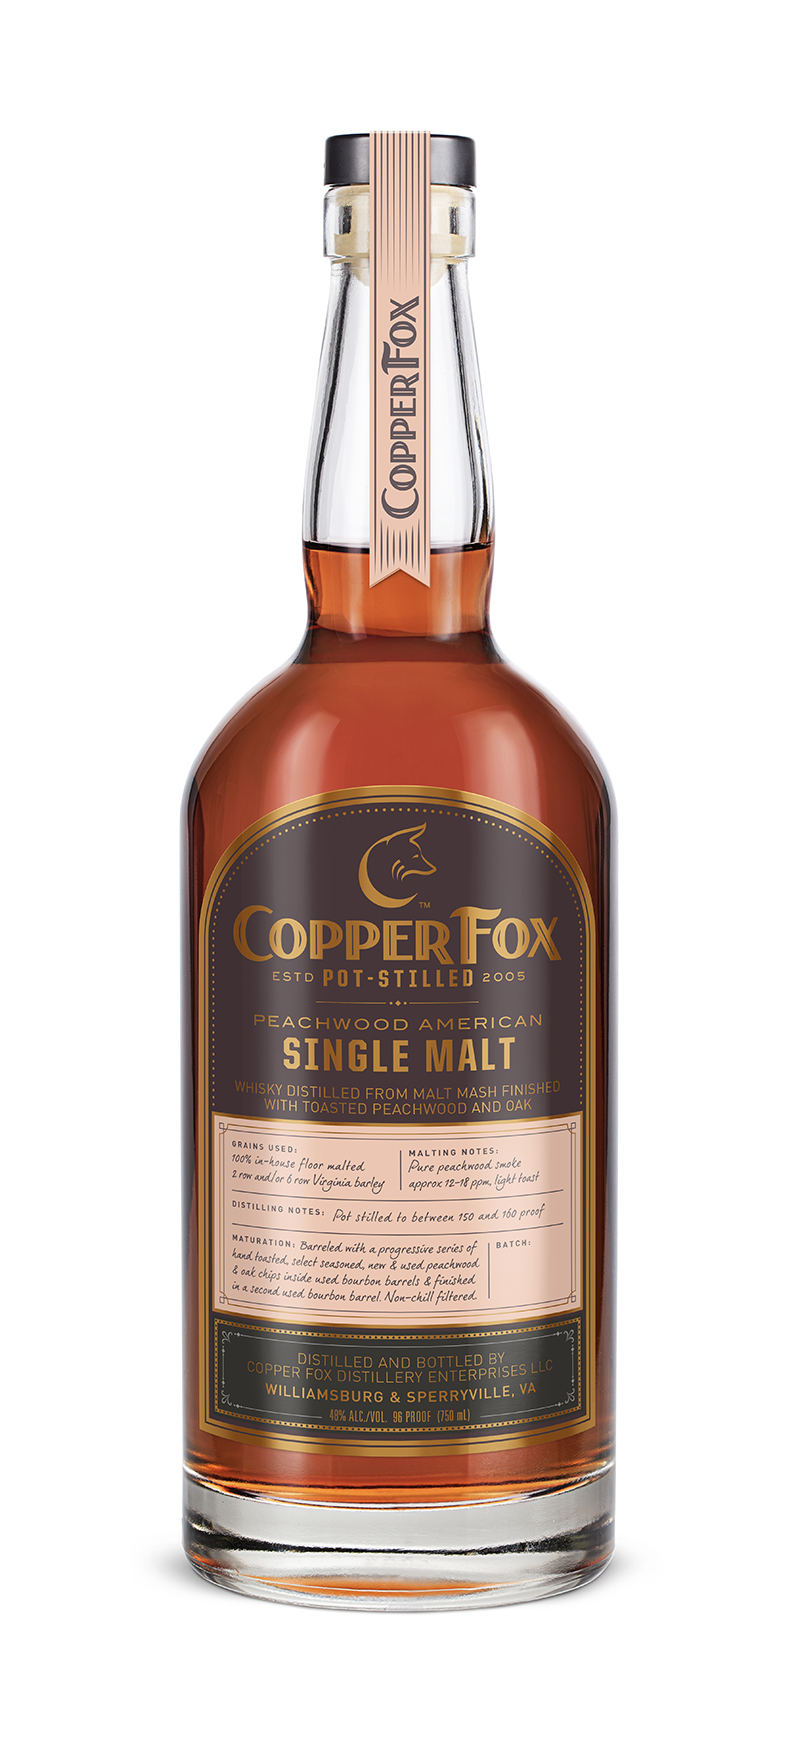 COPPER FOX PEACHWOOD AMERICAN SINGLE MALT - Our continuing quest to bring new flavors to the whisky world led us to the delicate complexities of peachwood. Both as a smoking medium during the kiln drying process and as a maturing catalyst inside our barrels, peachwood contributes a symphony of fruity, floral notes to our signature single malt.